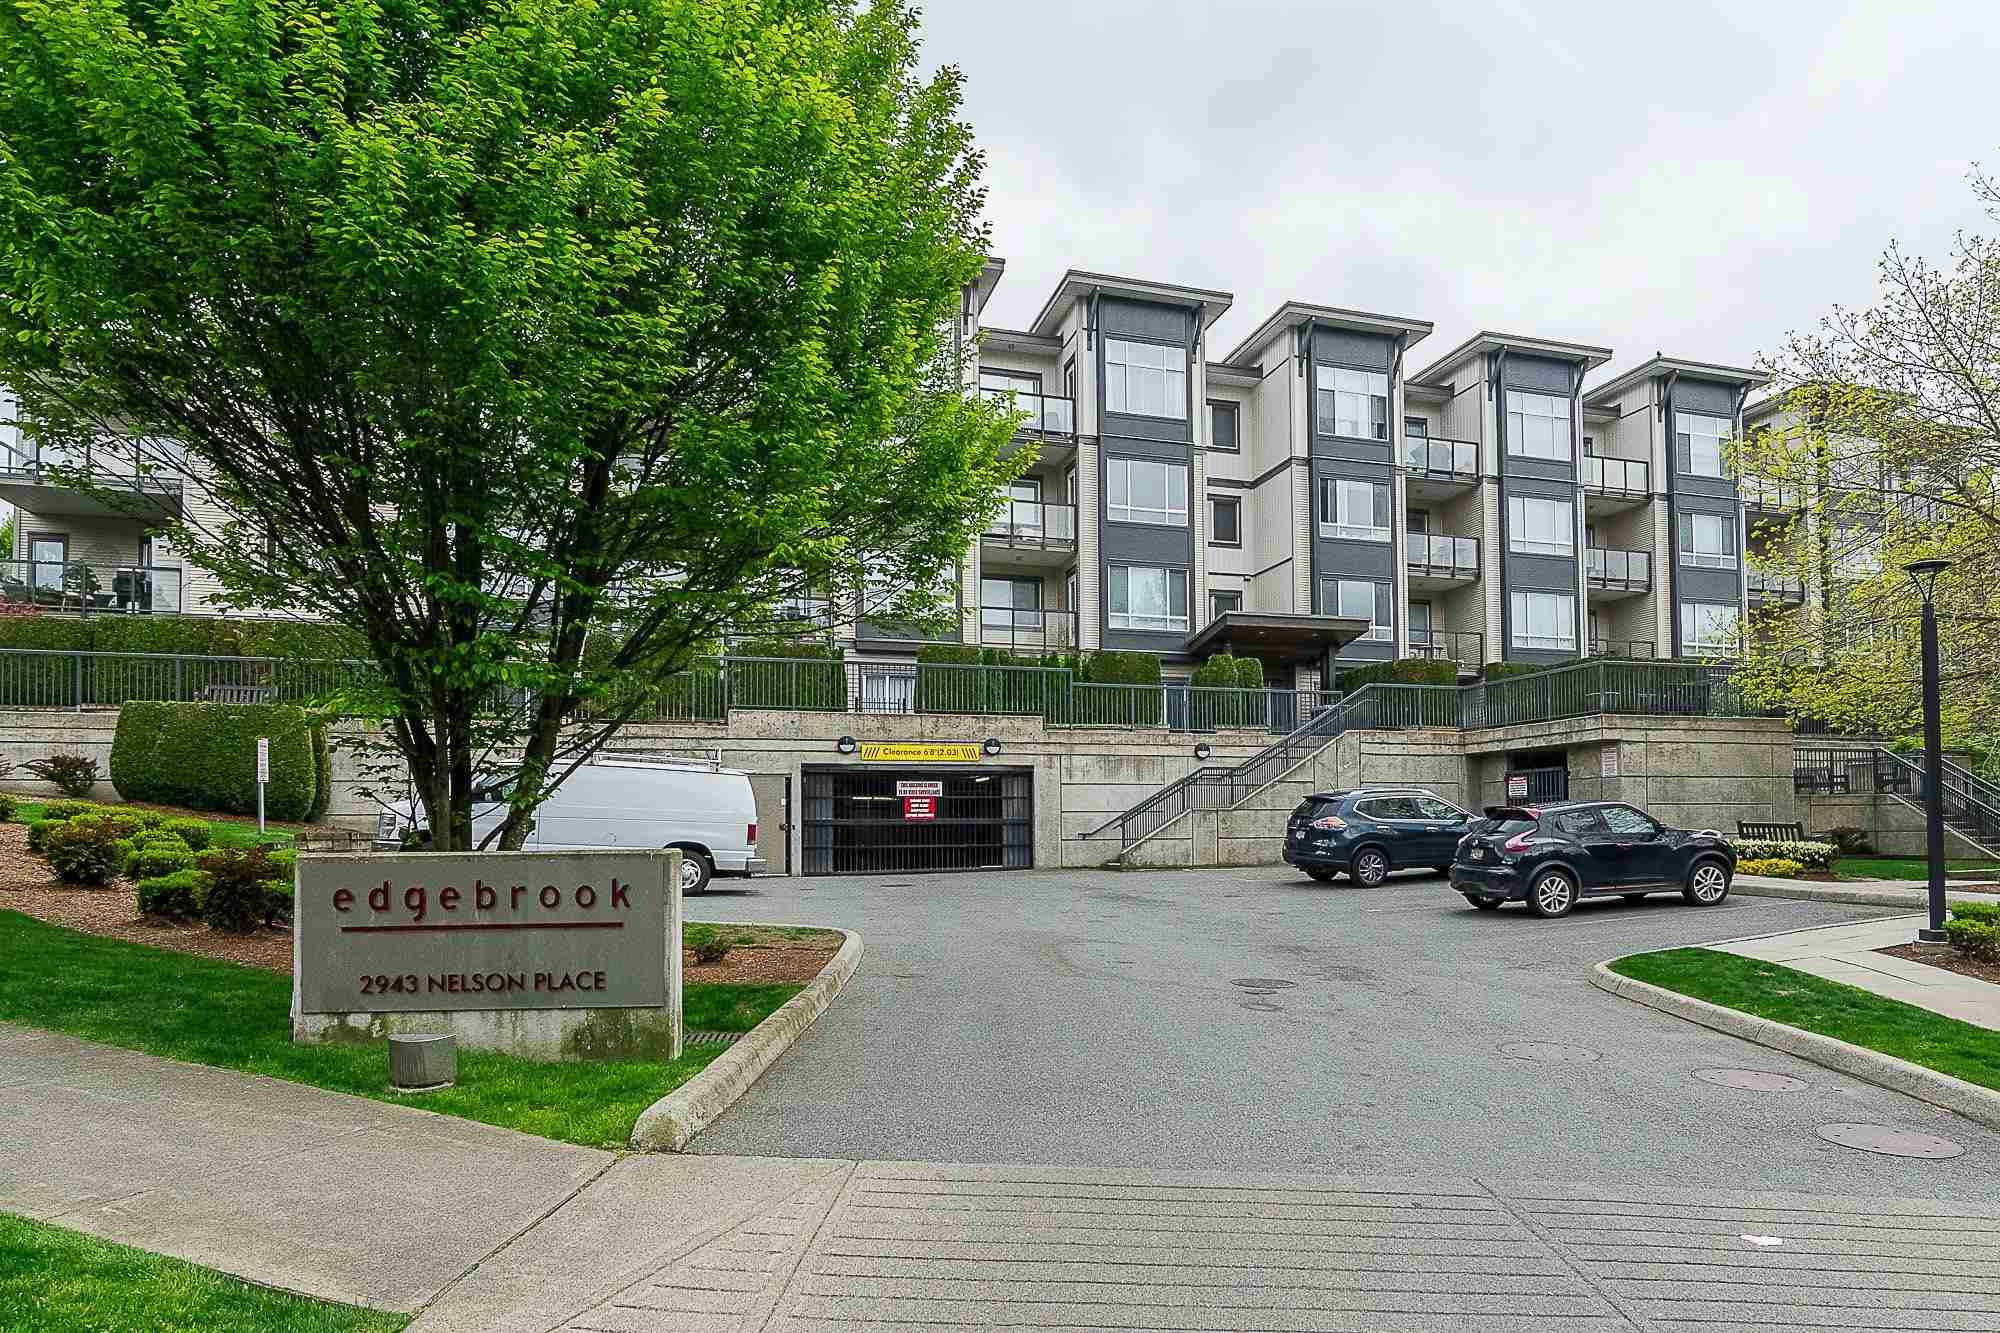 """Main Photo: 417 2943 NELSON Place in Abbotsford: Central Abbotsford Condo for sale in """"Edgebrook"""" : MLS®# R2594273"""